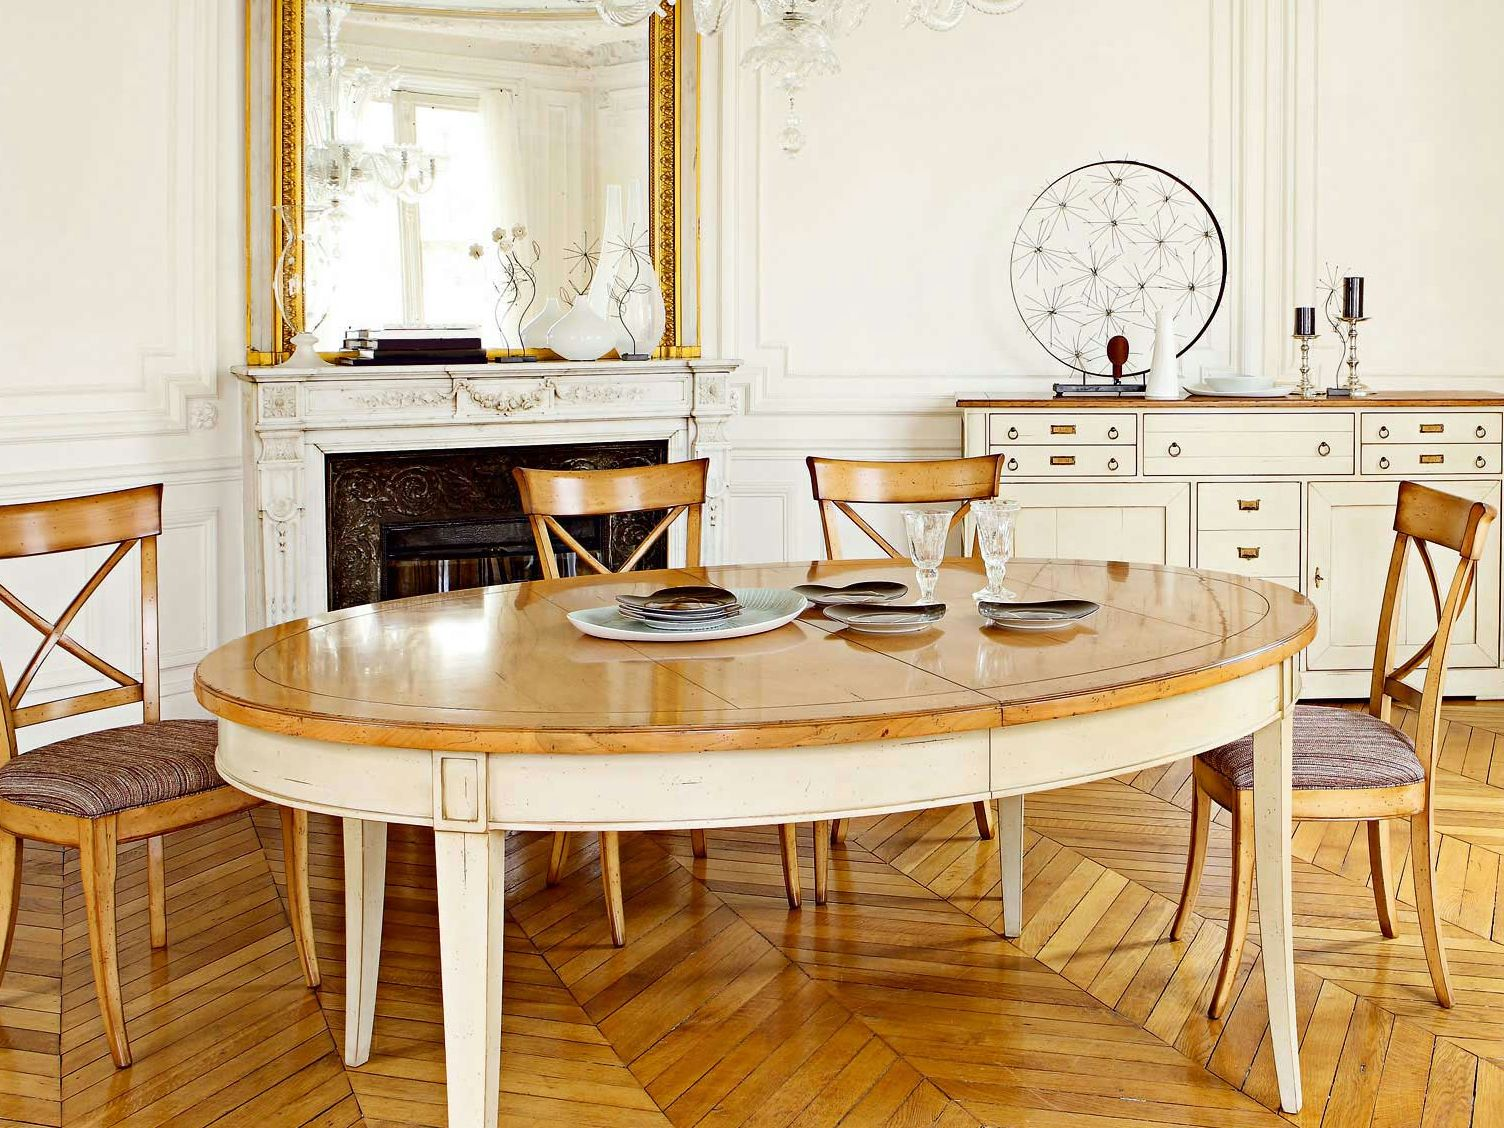 Oval cherry wood table HAUTEVILLE | Table - ROCHE BOBOIS | Dining ...